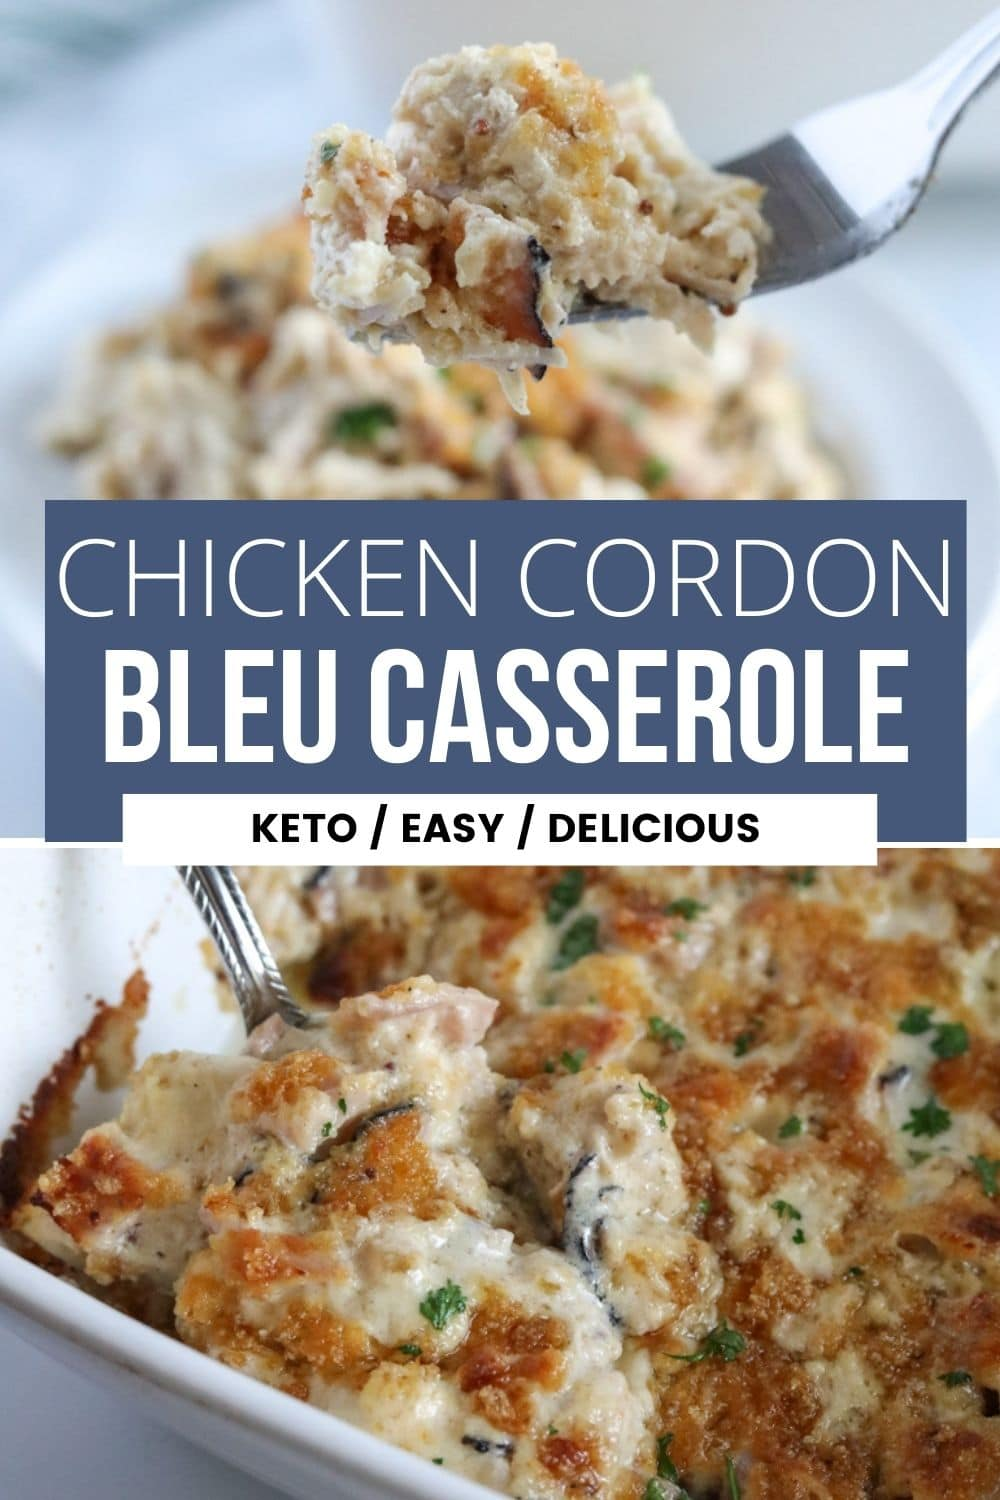 chicken cordon bleu casserole in baking dish with text overlay